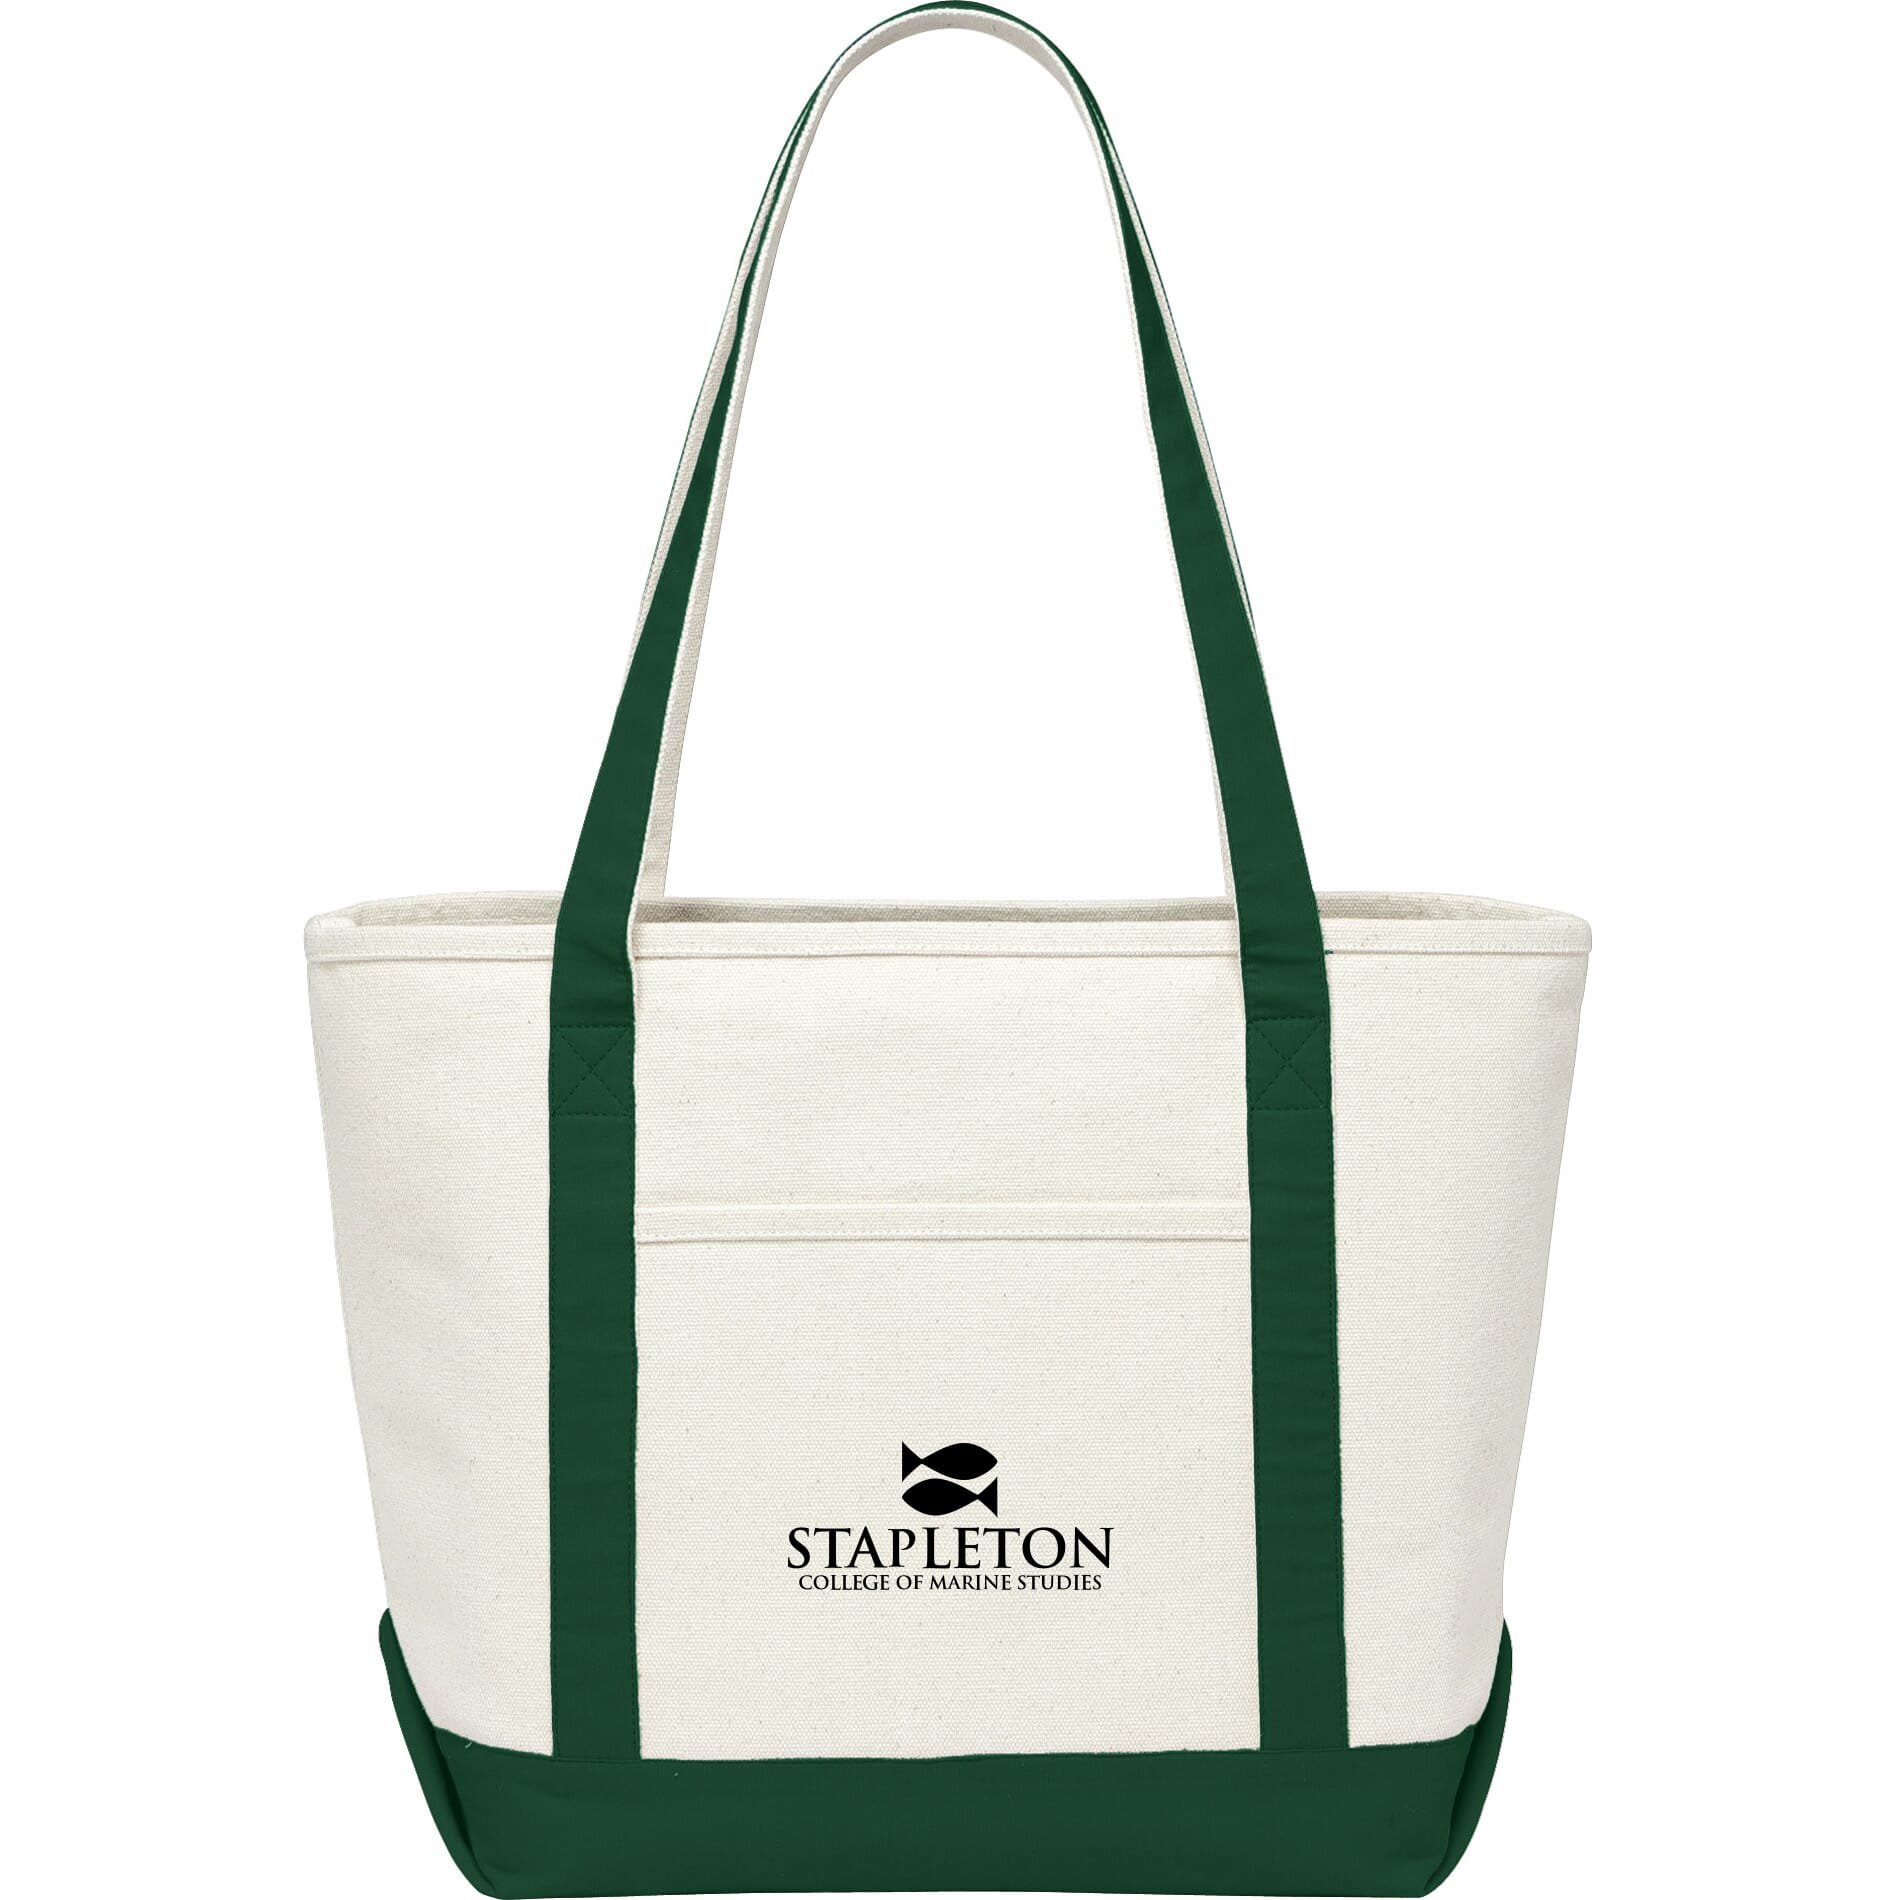 Classic Canvas Tote Bag with Green Accents